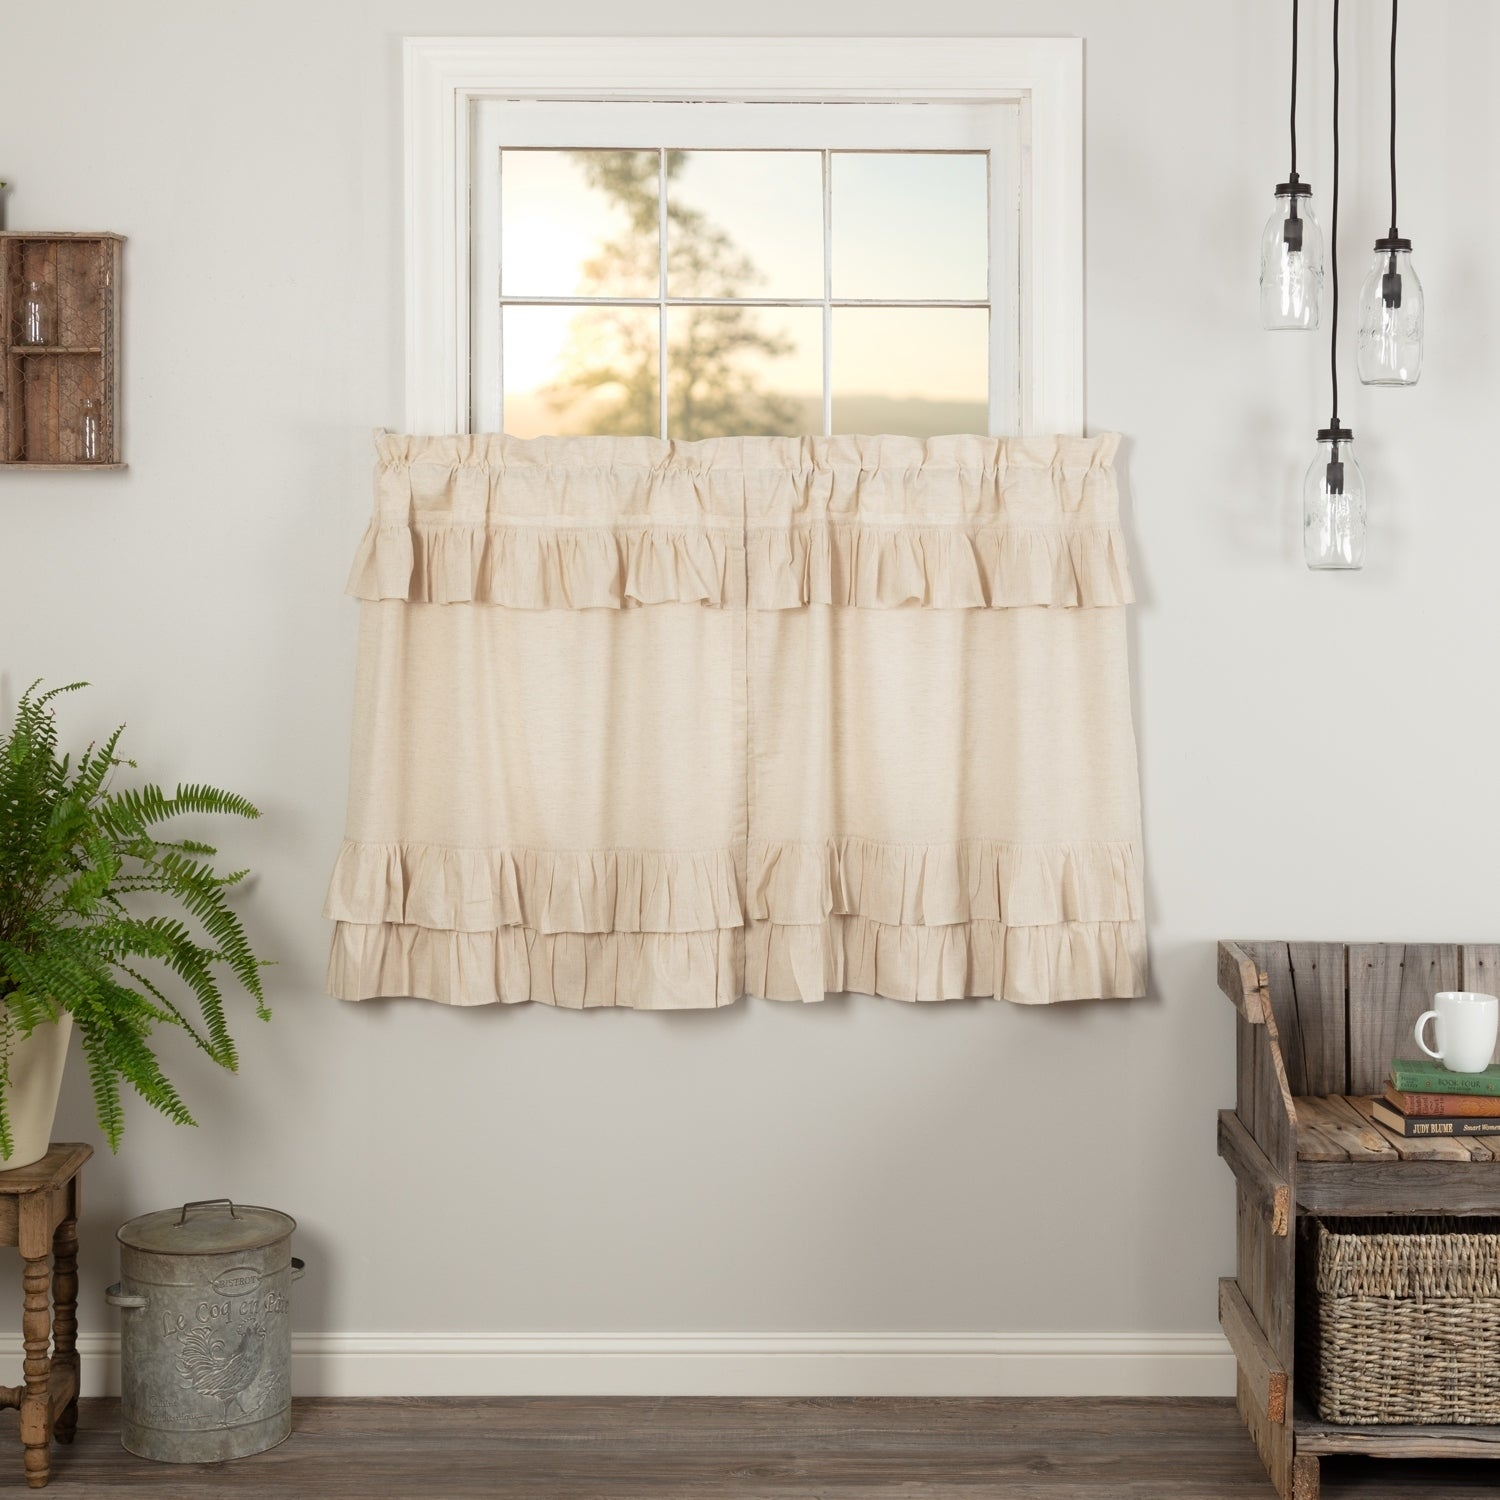 """Simple Life Flax SOLID NATURAL SCALLOPED 36/"""" TIER SET Country Farmhouse"""